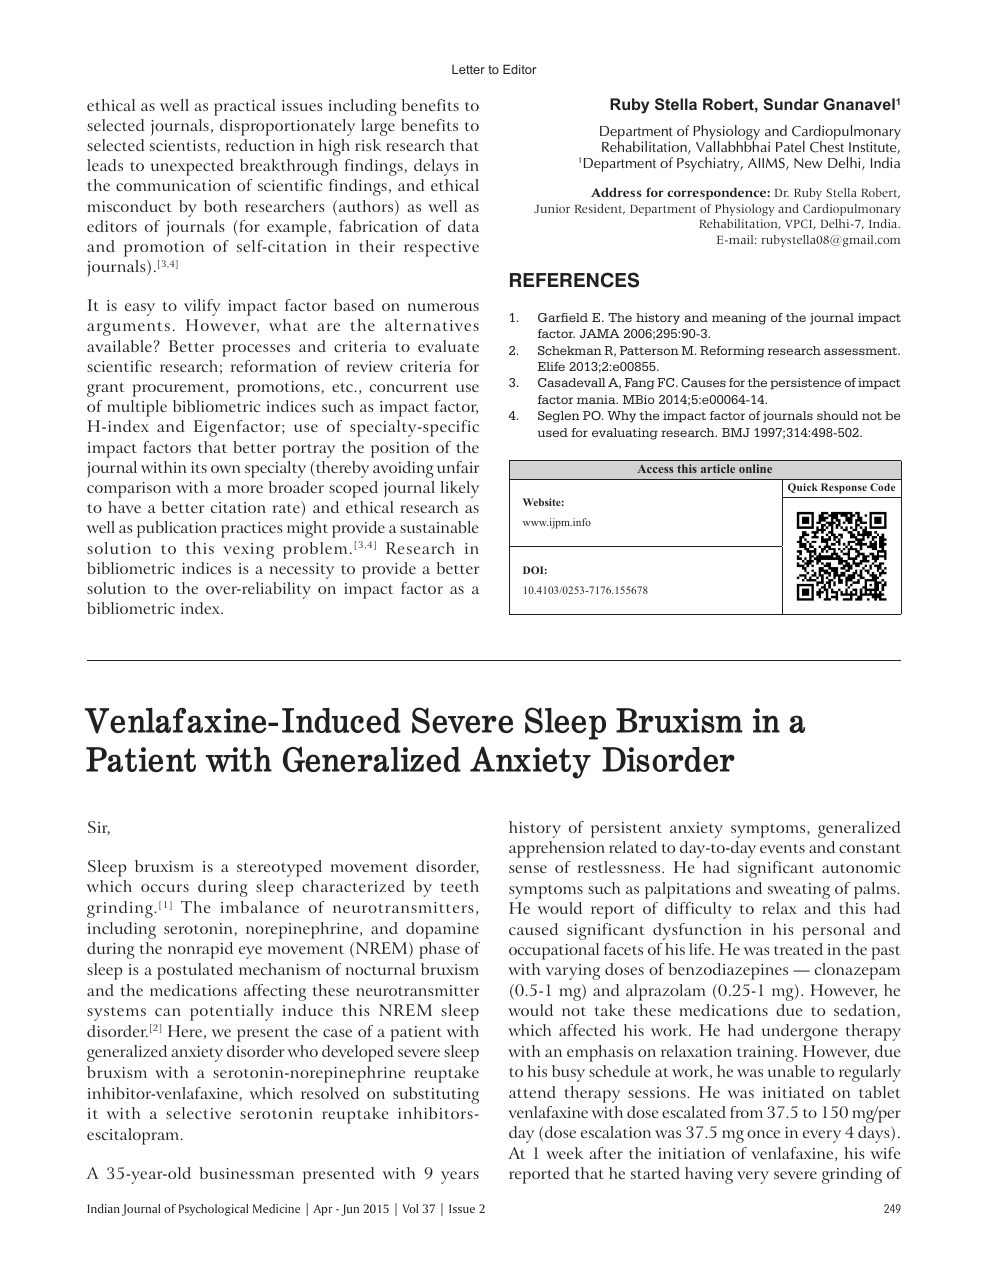 Thesis on generalized anxiety disorder